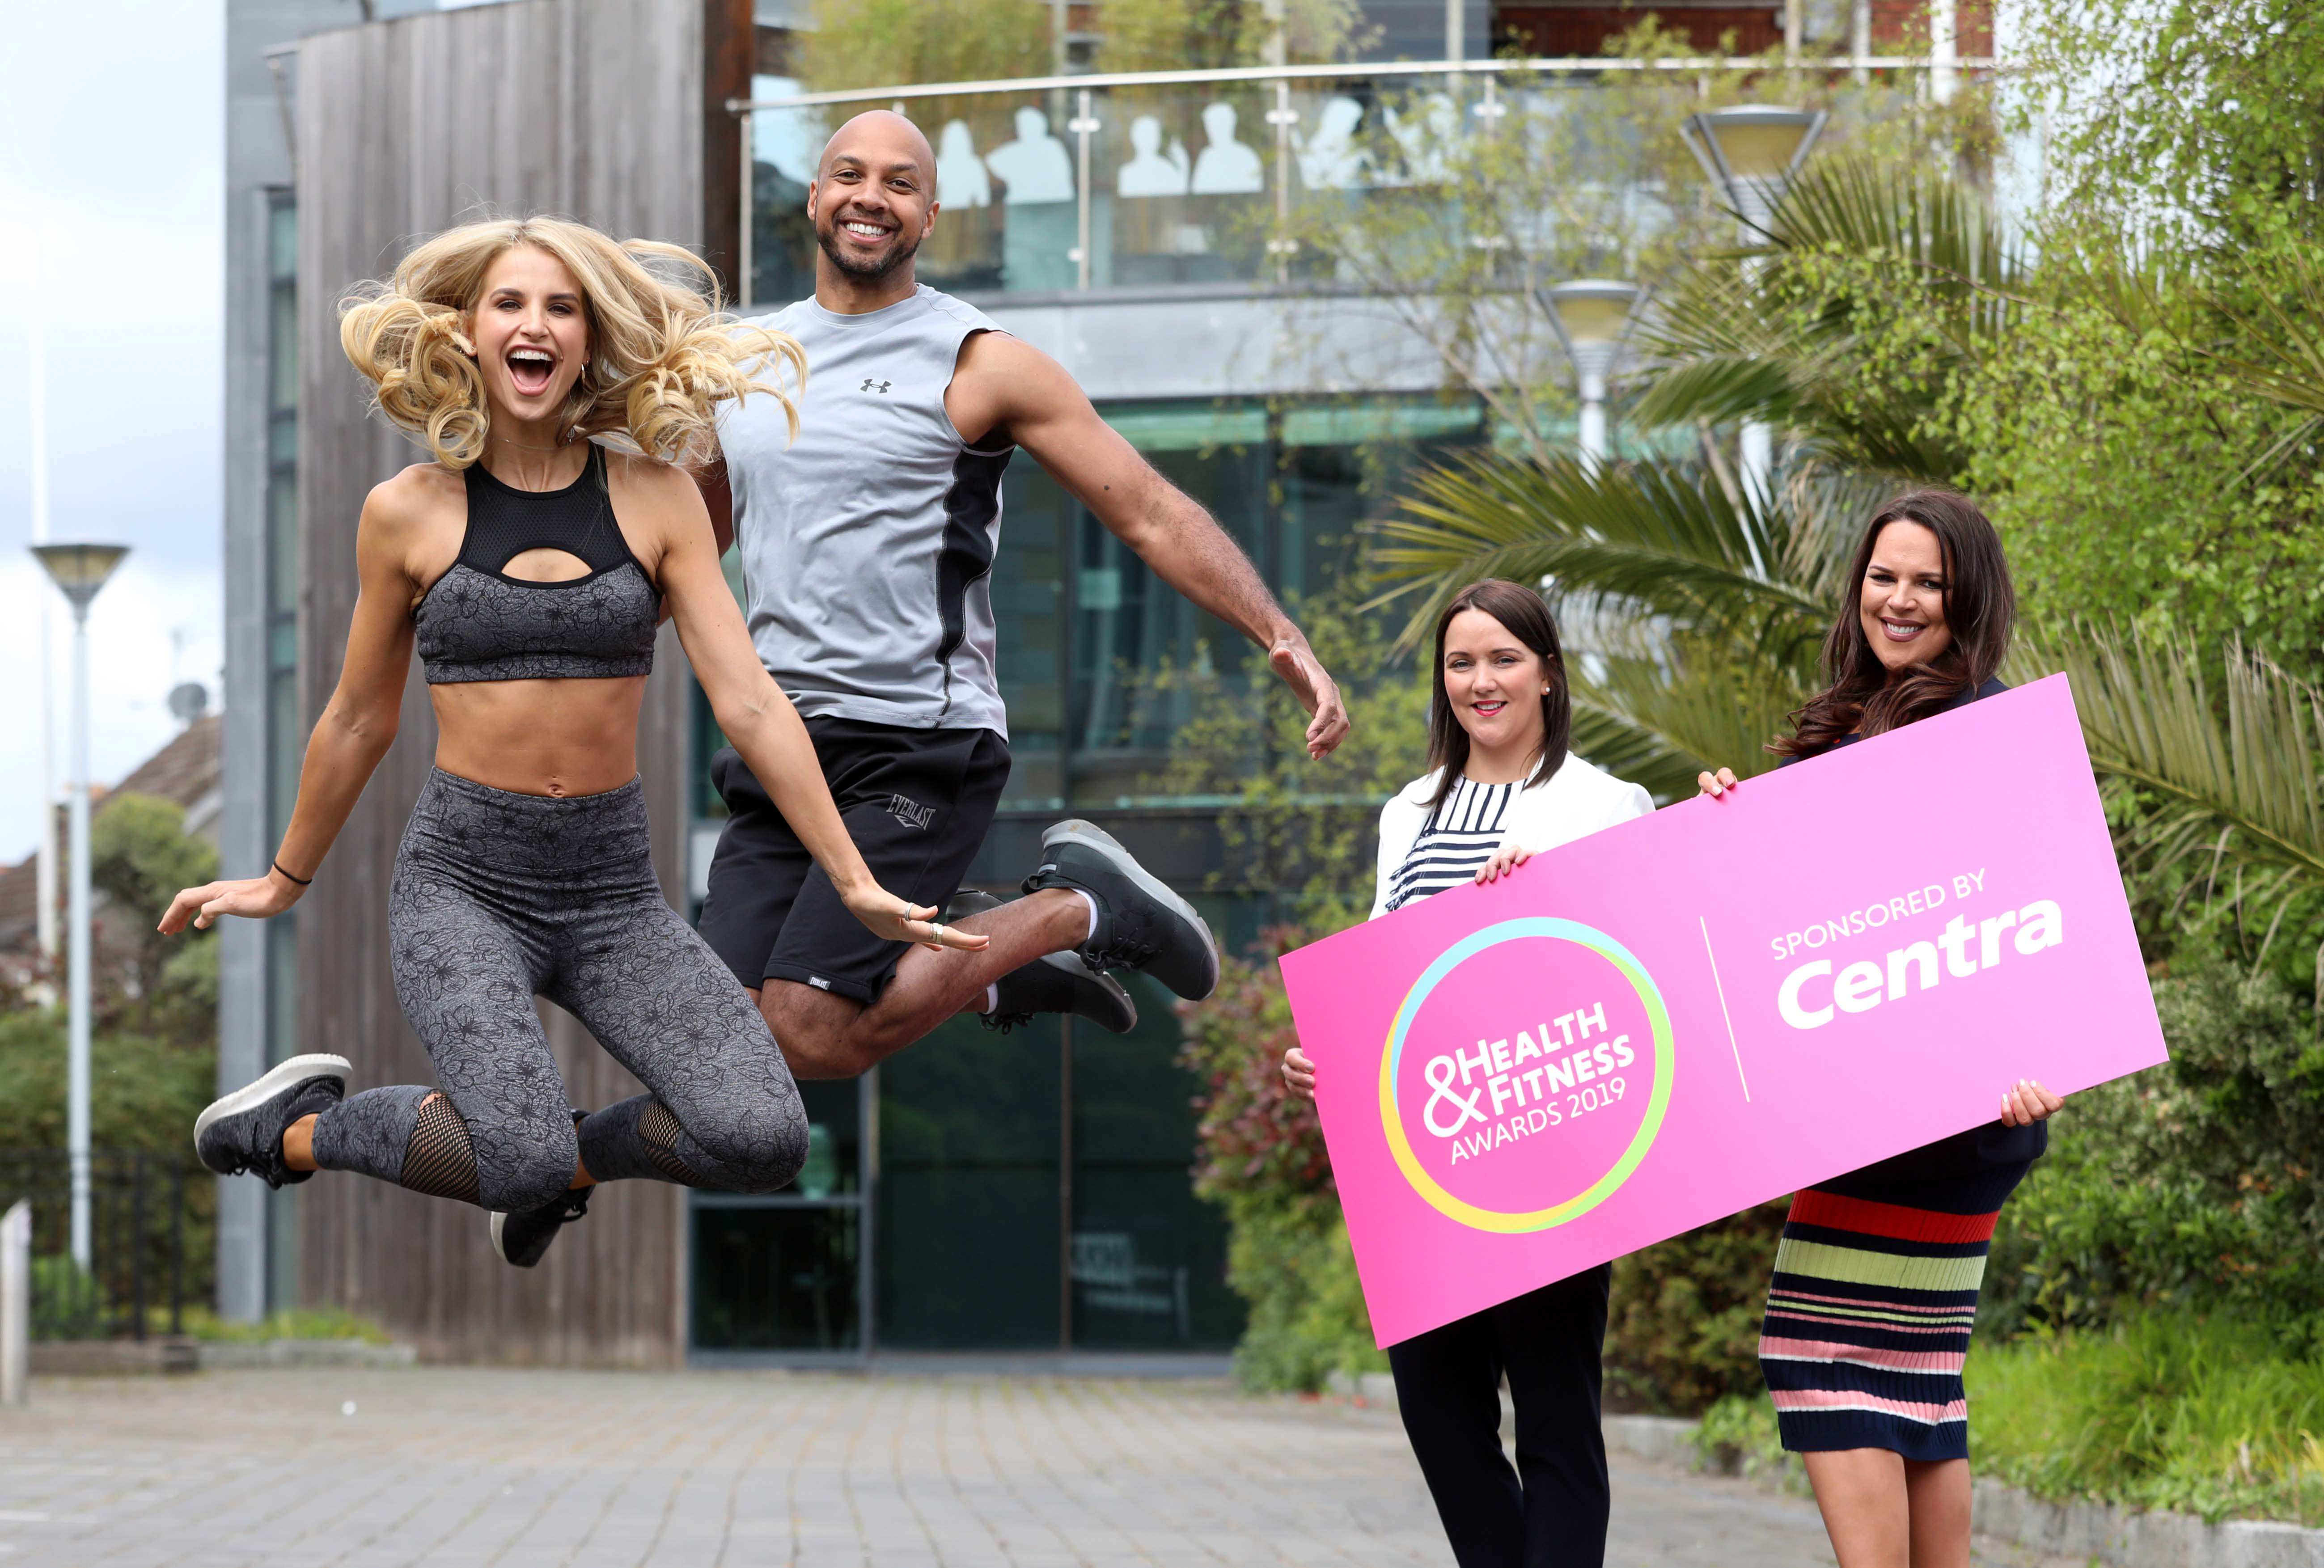 Pictured: Jennifer Morton, Centra NI Brand Manager and Sarah Weir, Director of Weir Events are pictured at the launch of the 2019 Northern Ireland Health and Fitness Awards sponsored by Centra with event co-hosts and well-known fitness advocates, Q Radio presenter Ibe Sesay and TV personality, Vogue Williams.